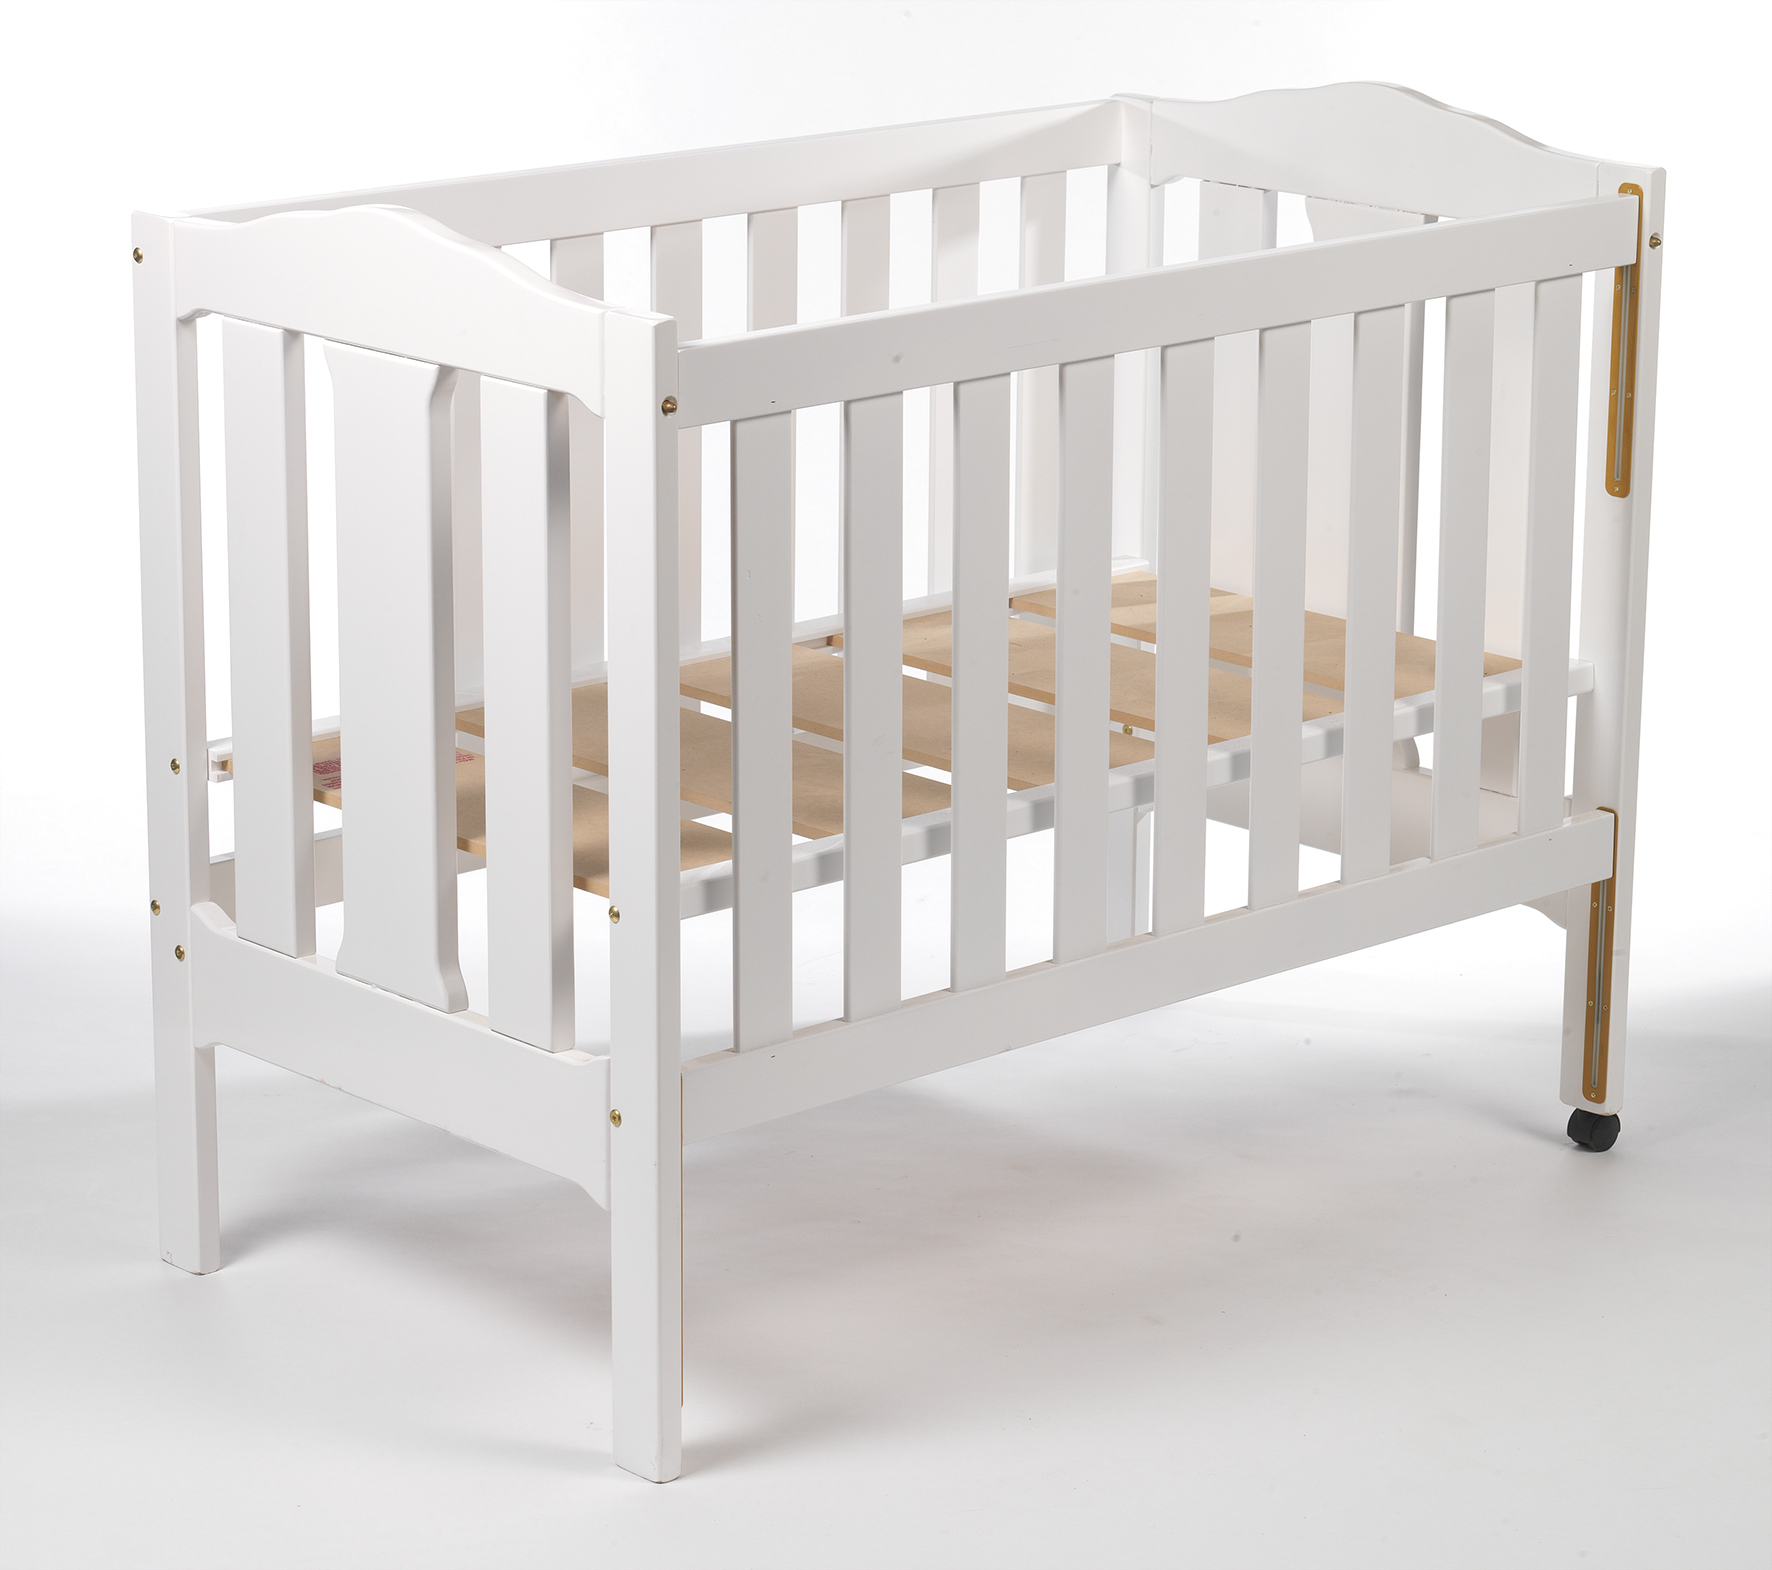 Household Cots Product Safety Australia